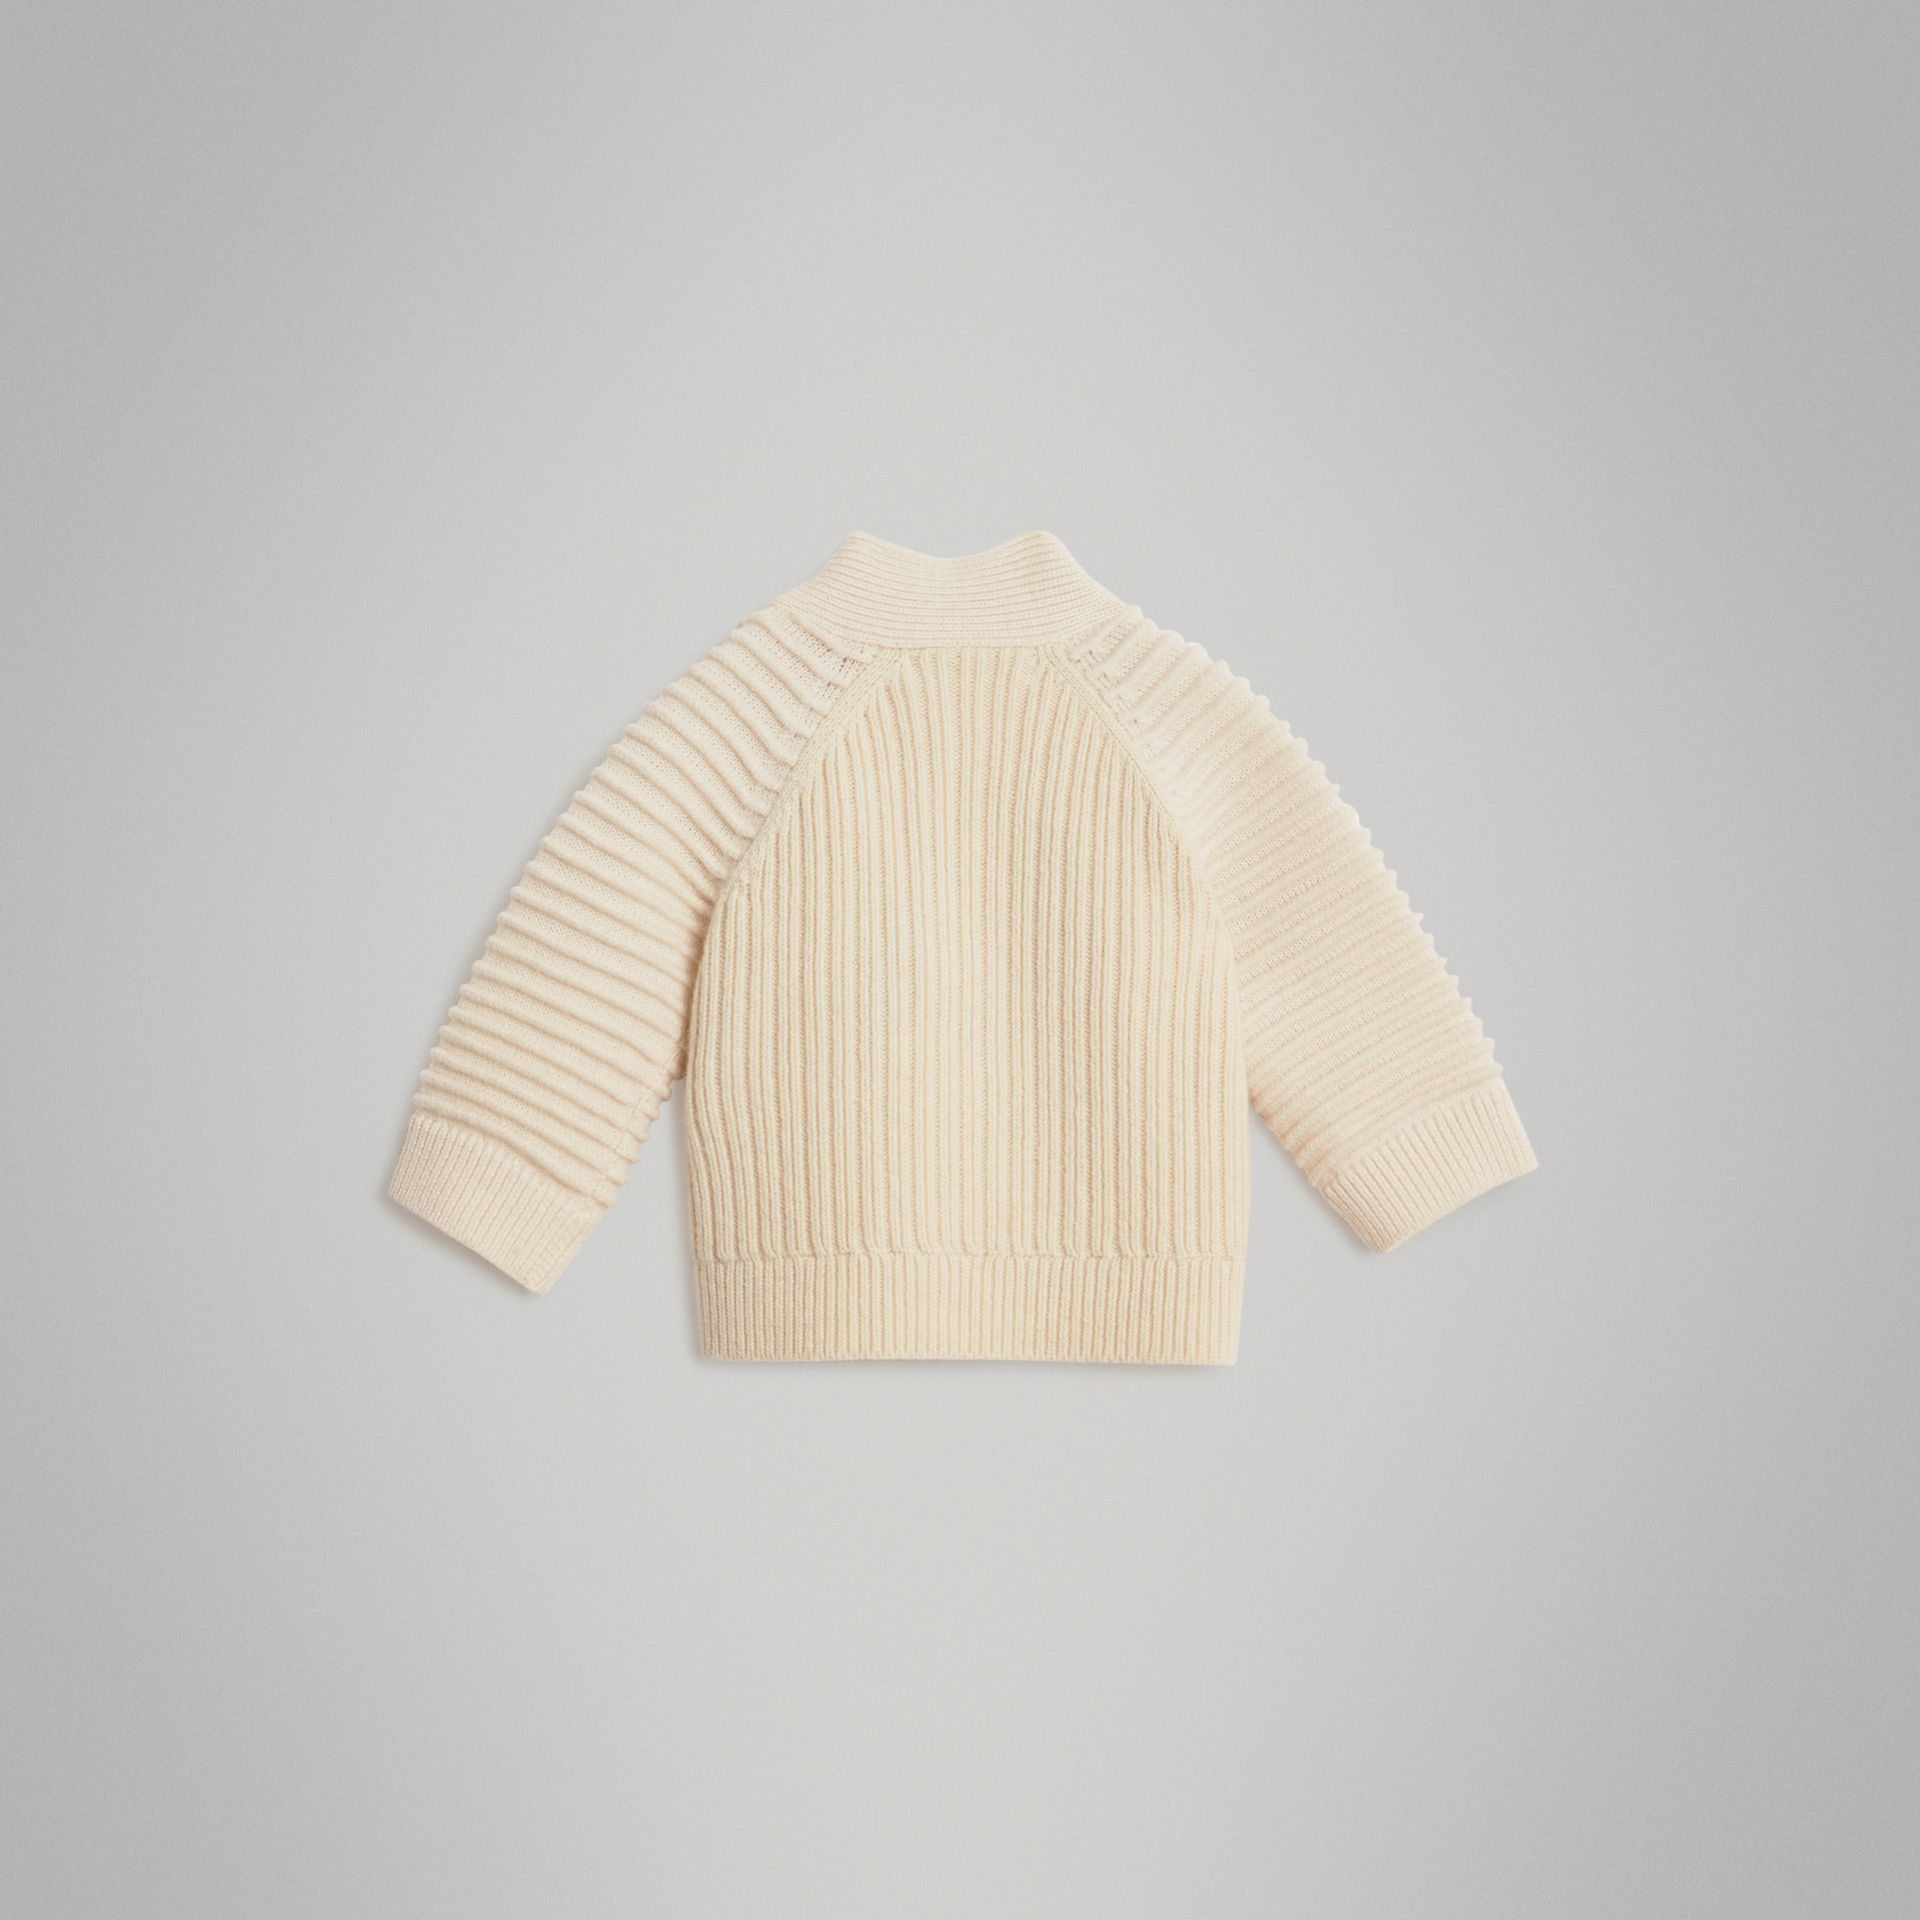 Rib Knit Wool Cashmere Cardigan in Ivory - Children | Burberry Australia - gallery image 3